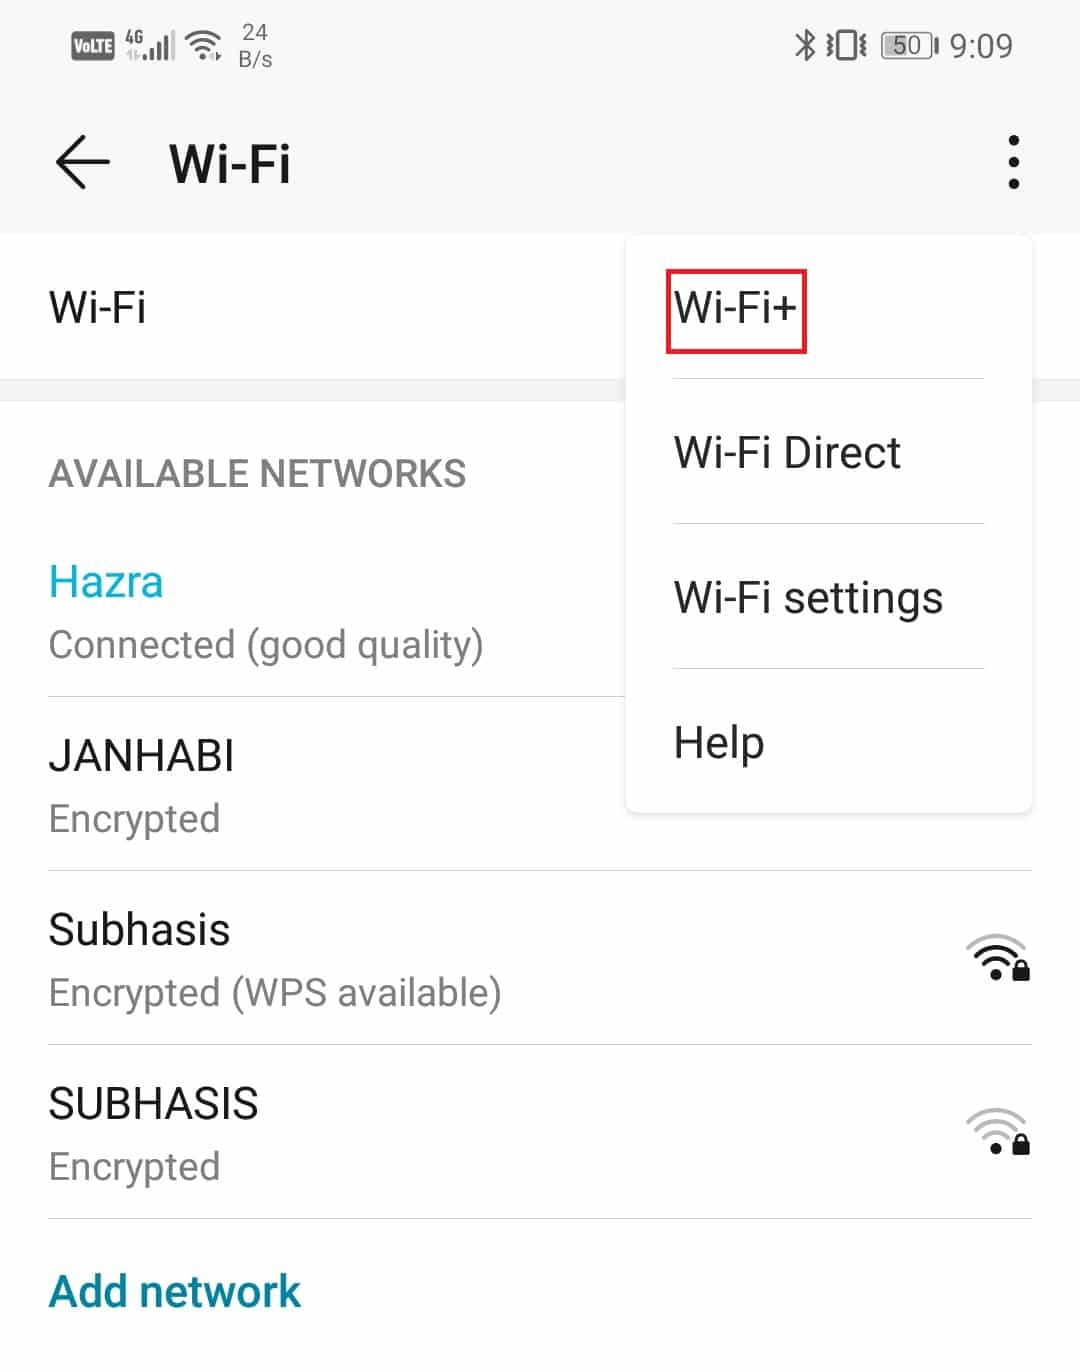 tap on the three-dot menu on the top-right corner and select the Wi-Fi+ option.